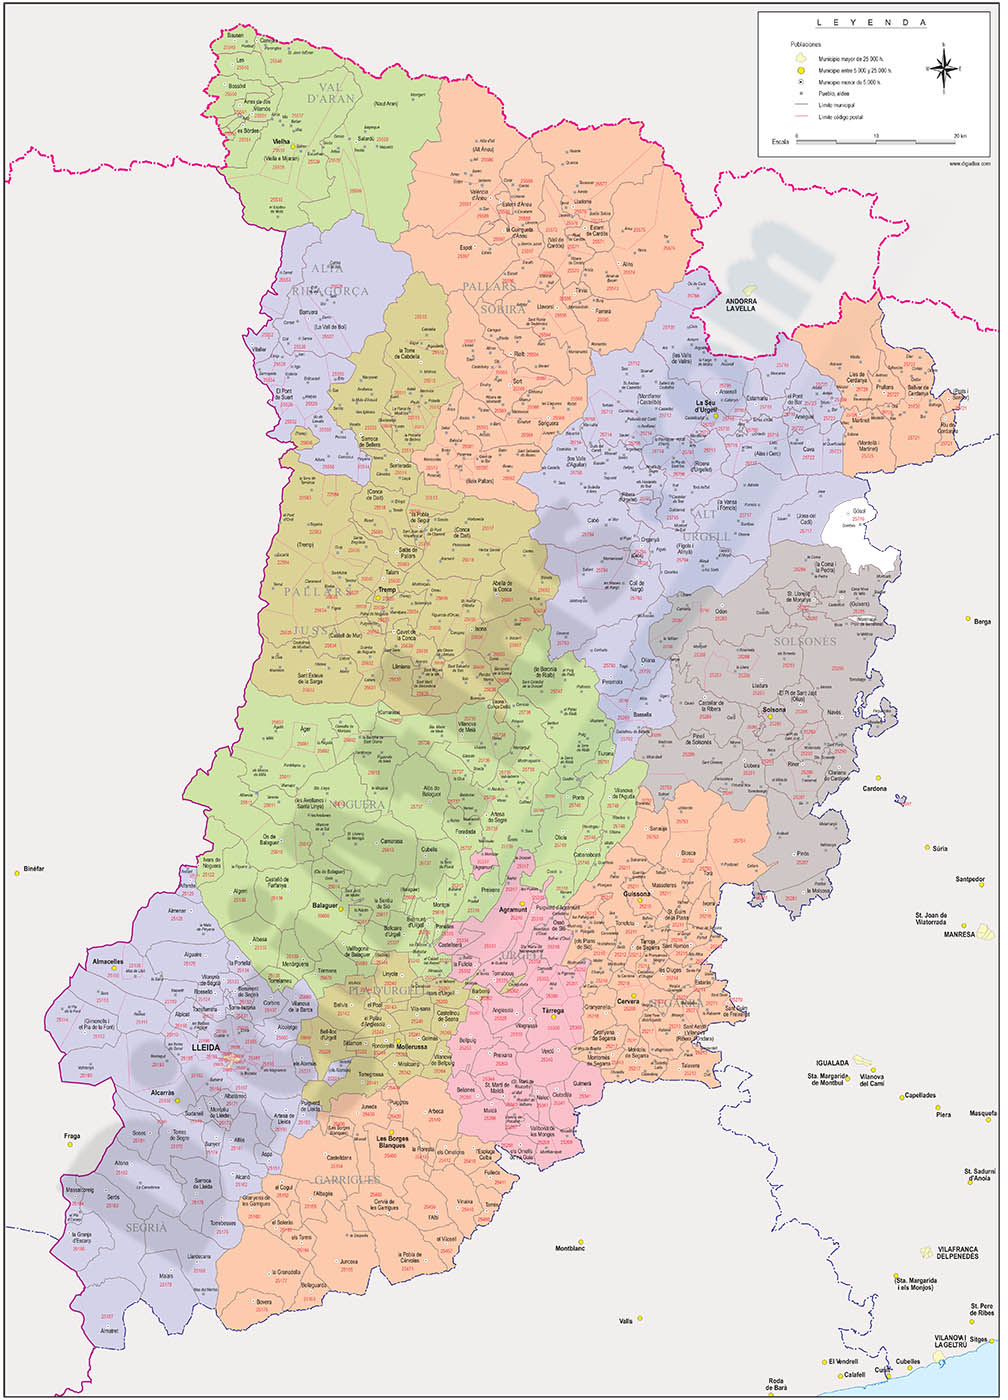 Lleida - province map with municipalities, comarcas and postal codes